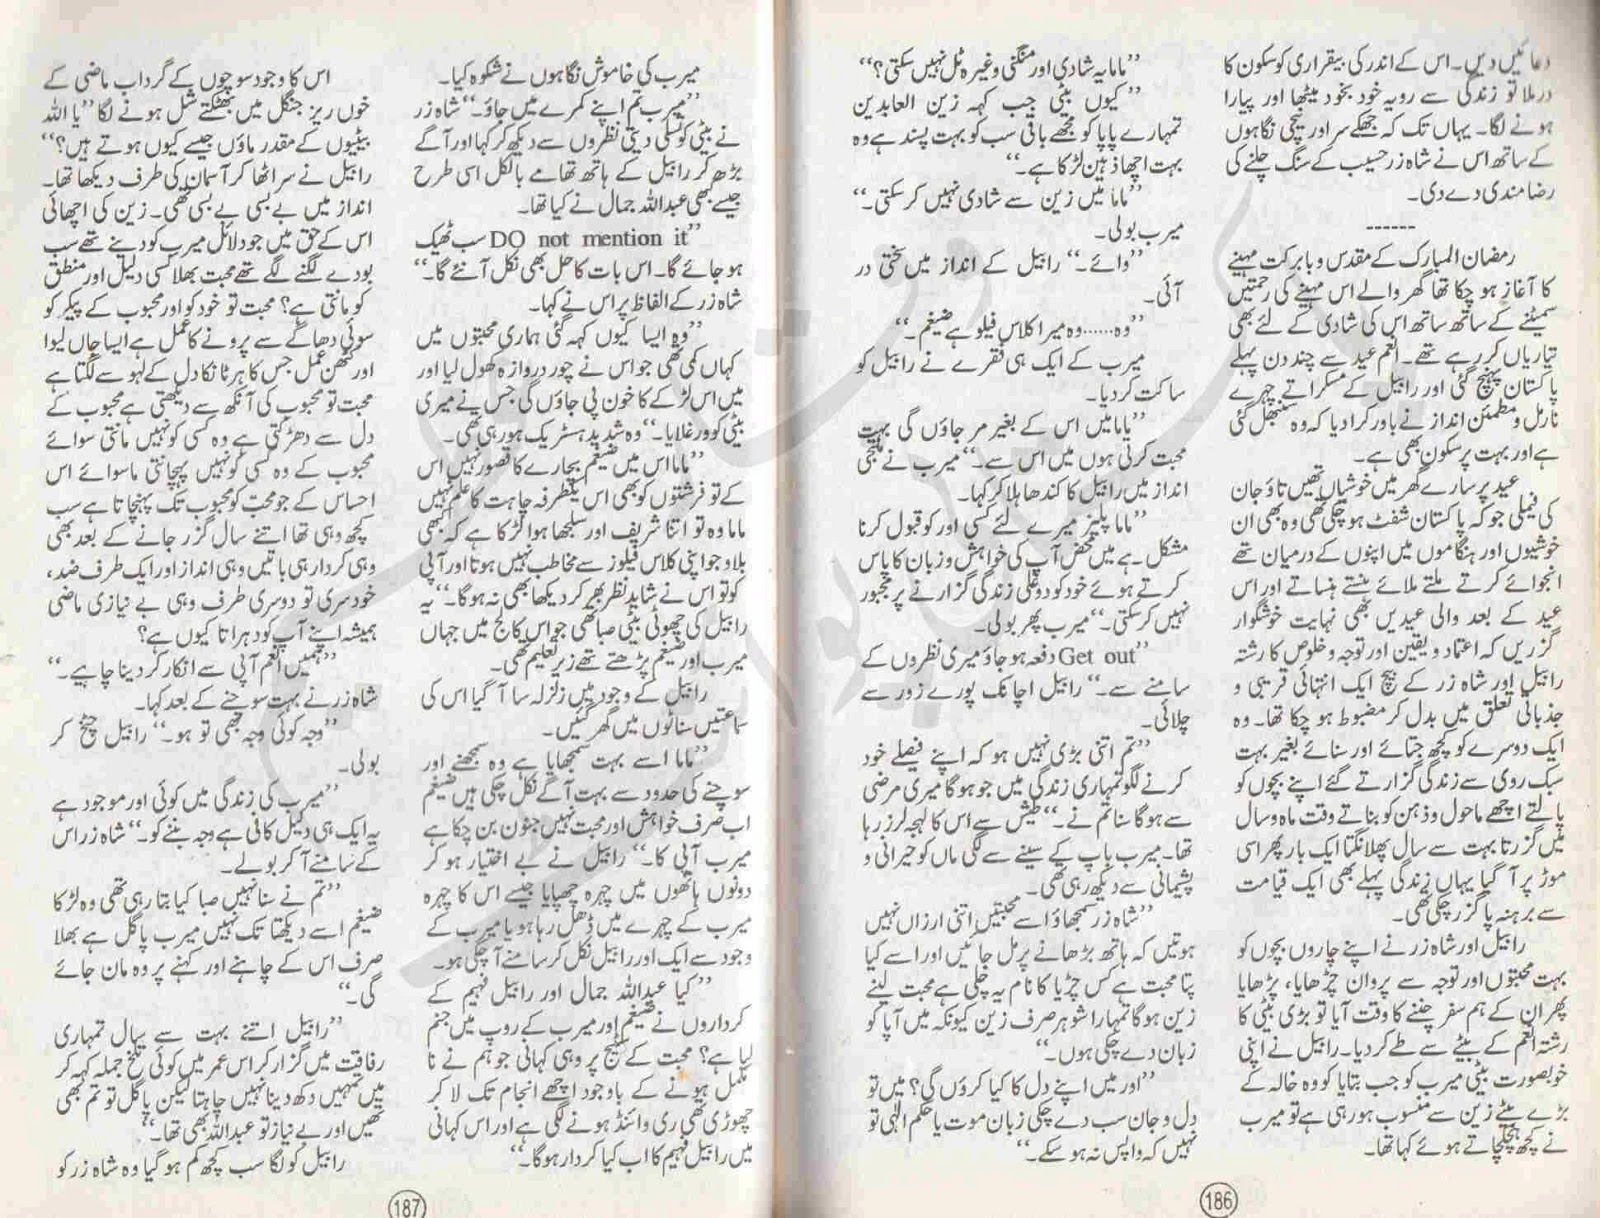 patang bazi essay in urdu The usual name for the sport is gudiparan bazi and for the indian fighter kite (india) (also known as a patang hindi/urdu for the abrasive coated.